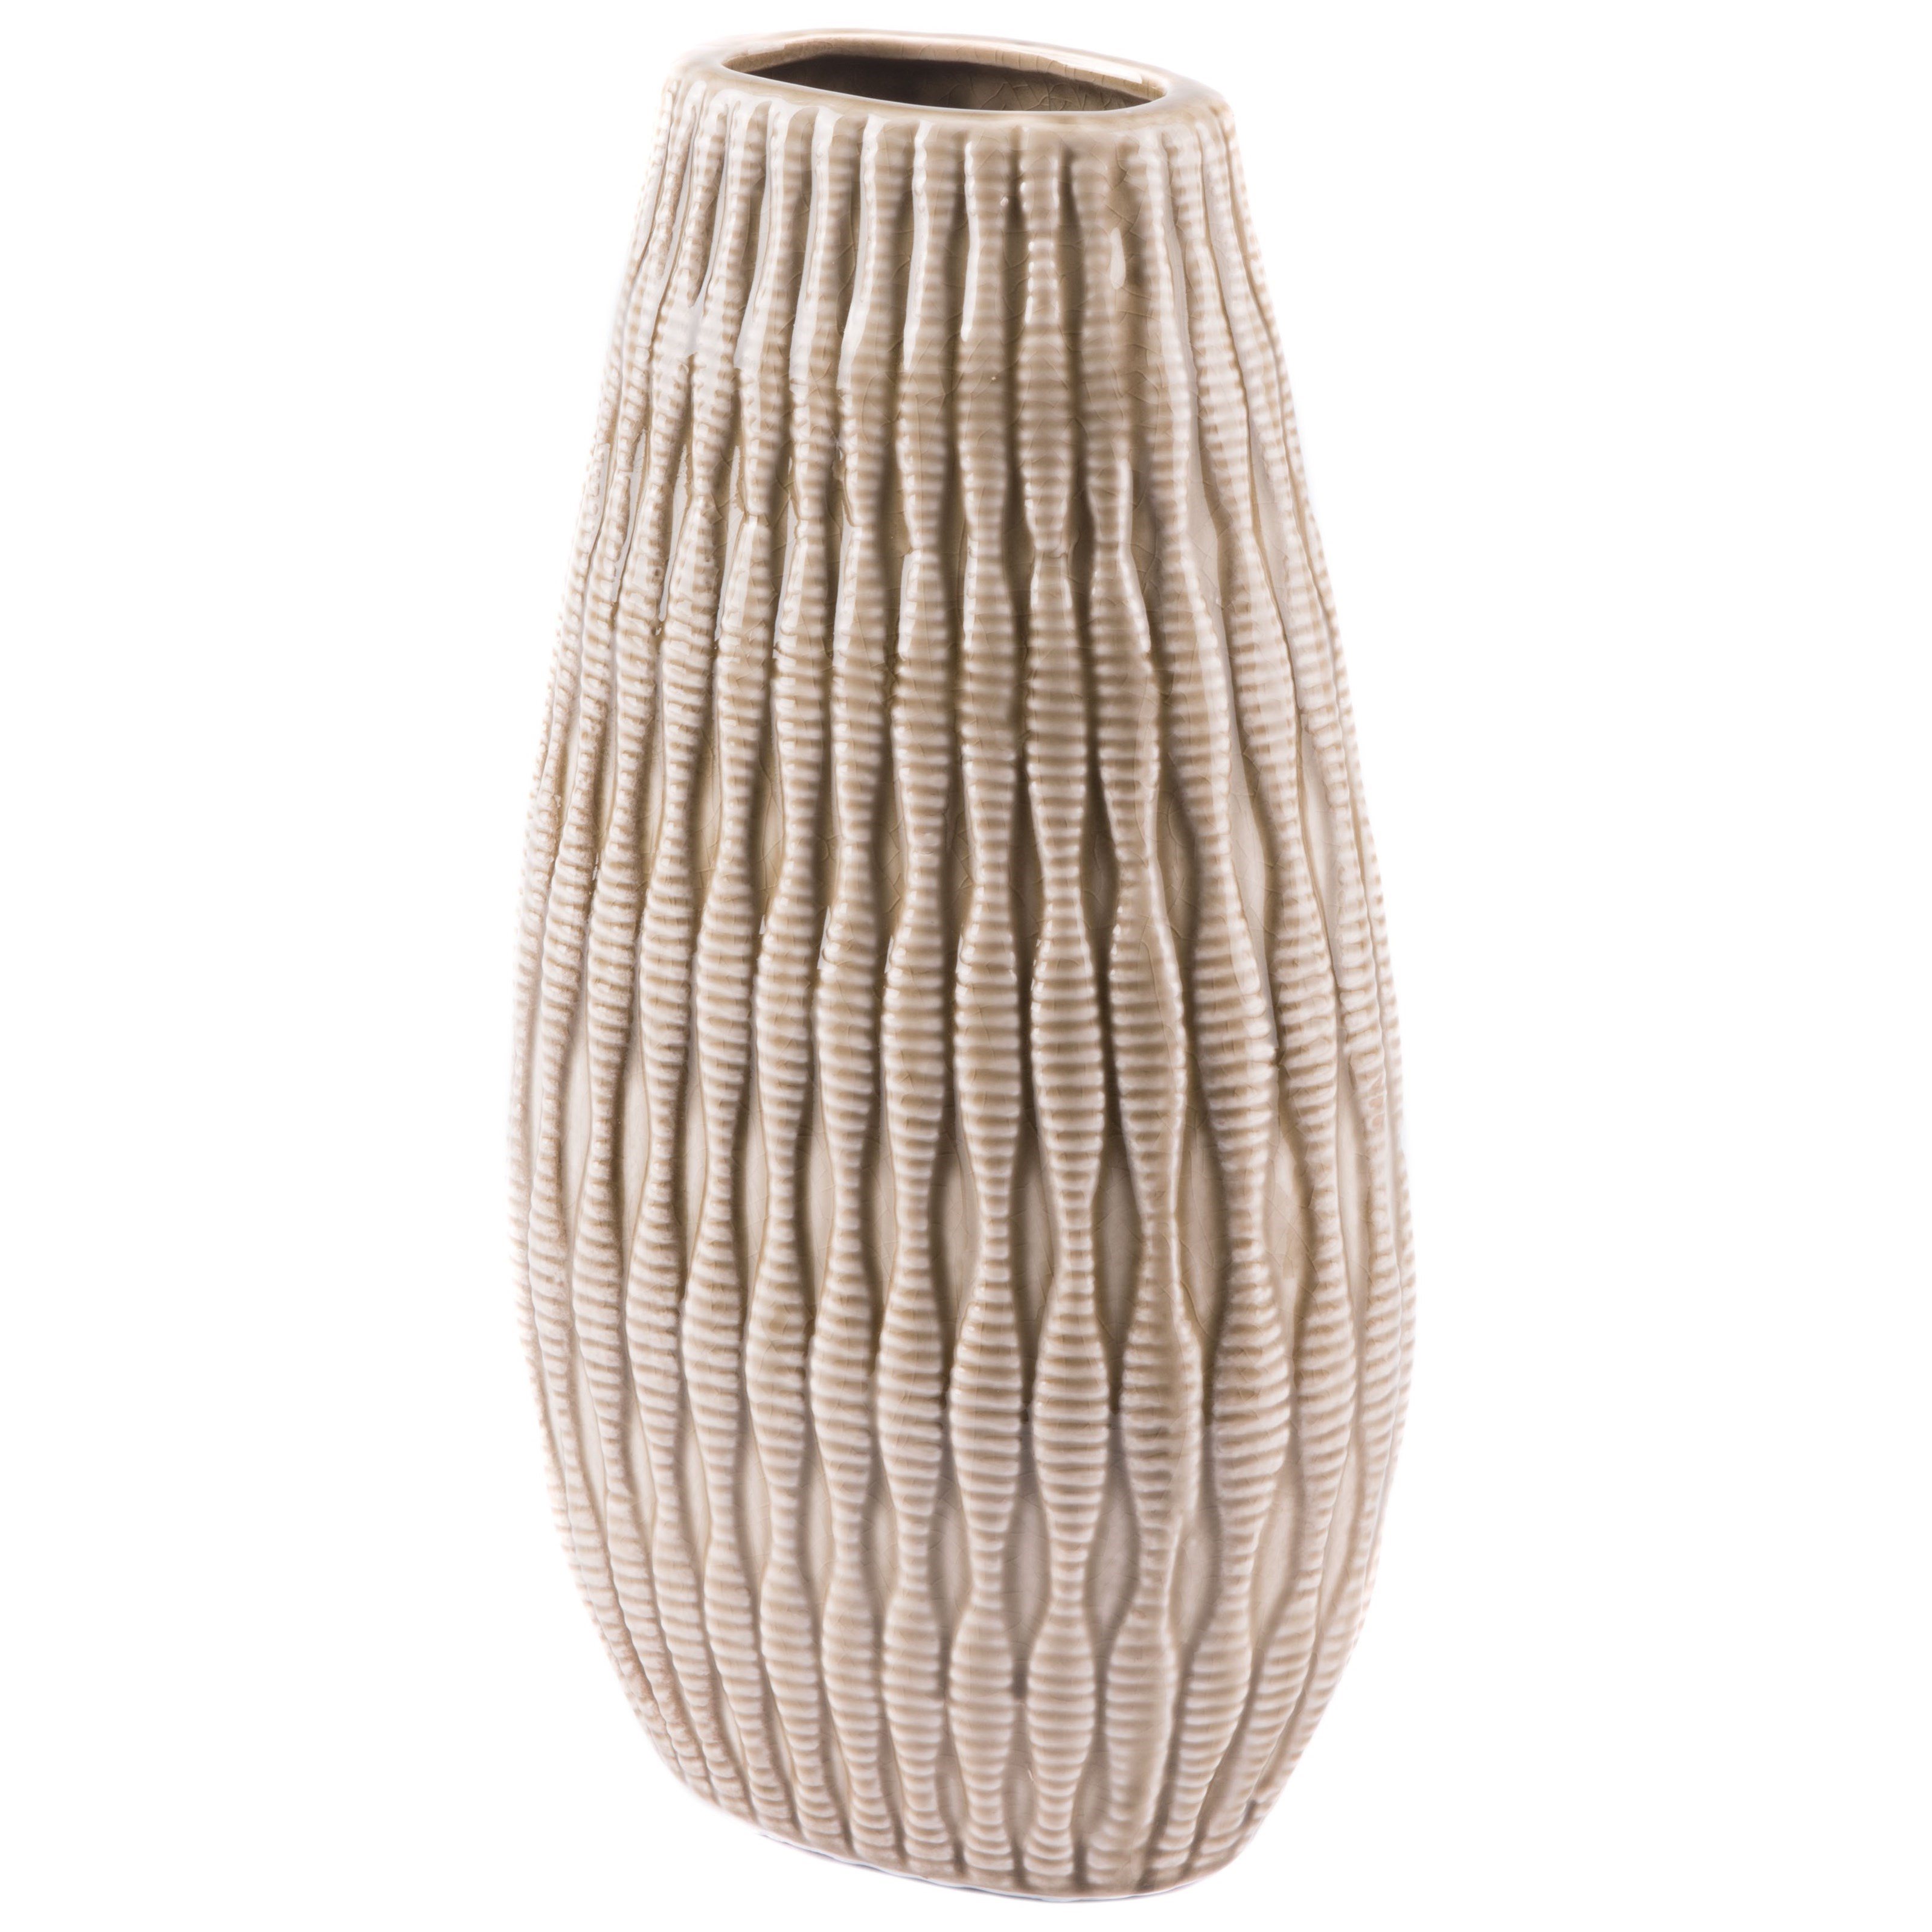 Vases Marino Large Vase by Zuo at Nassau Furniture and Mattress